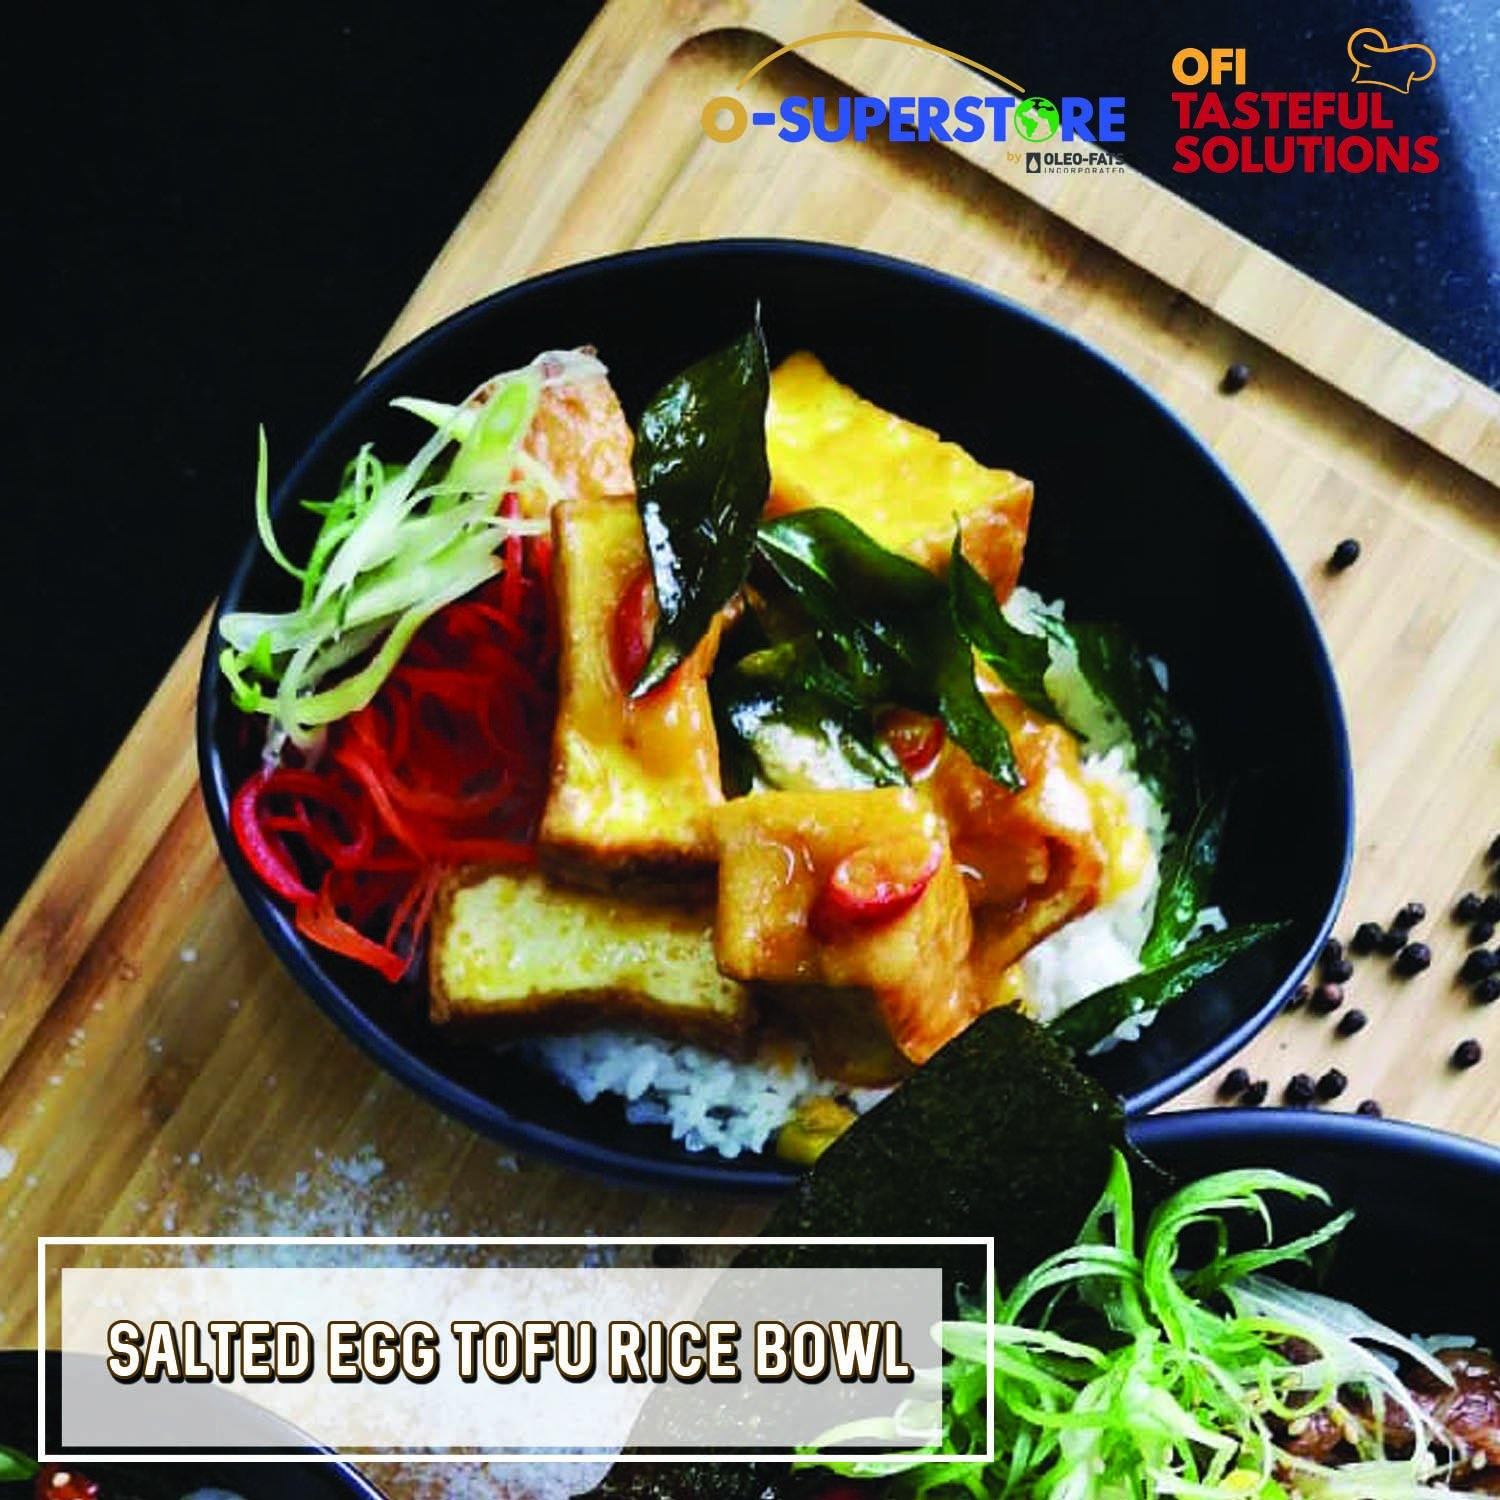 Salted Egg Tofu Rice Bowl - O-SUPERSTORE